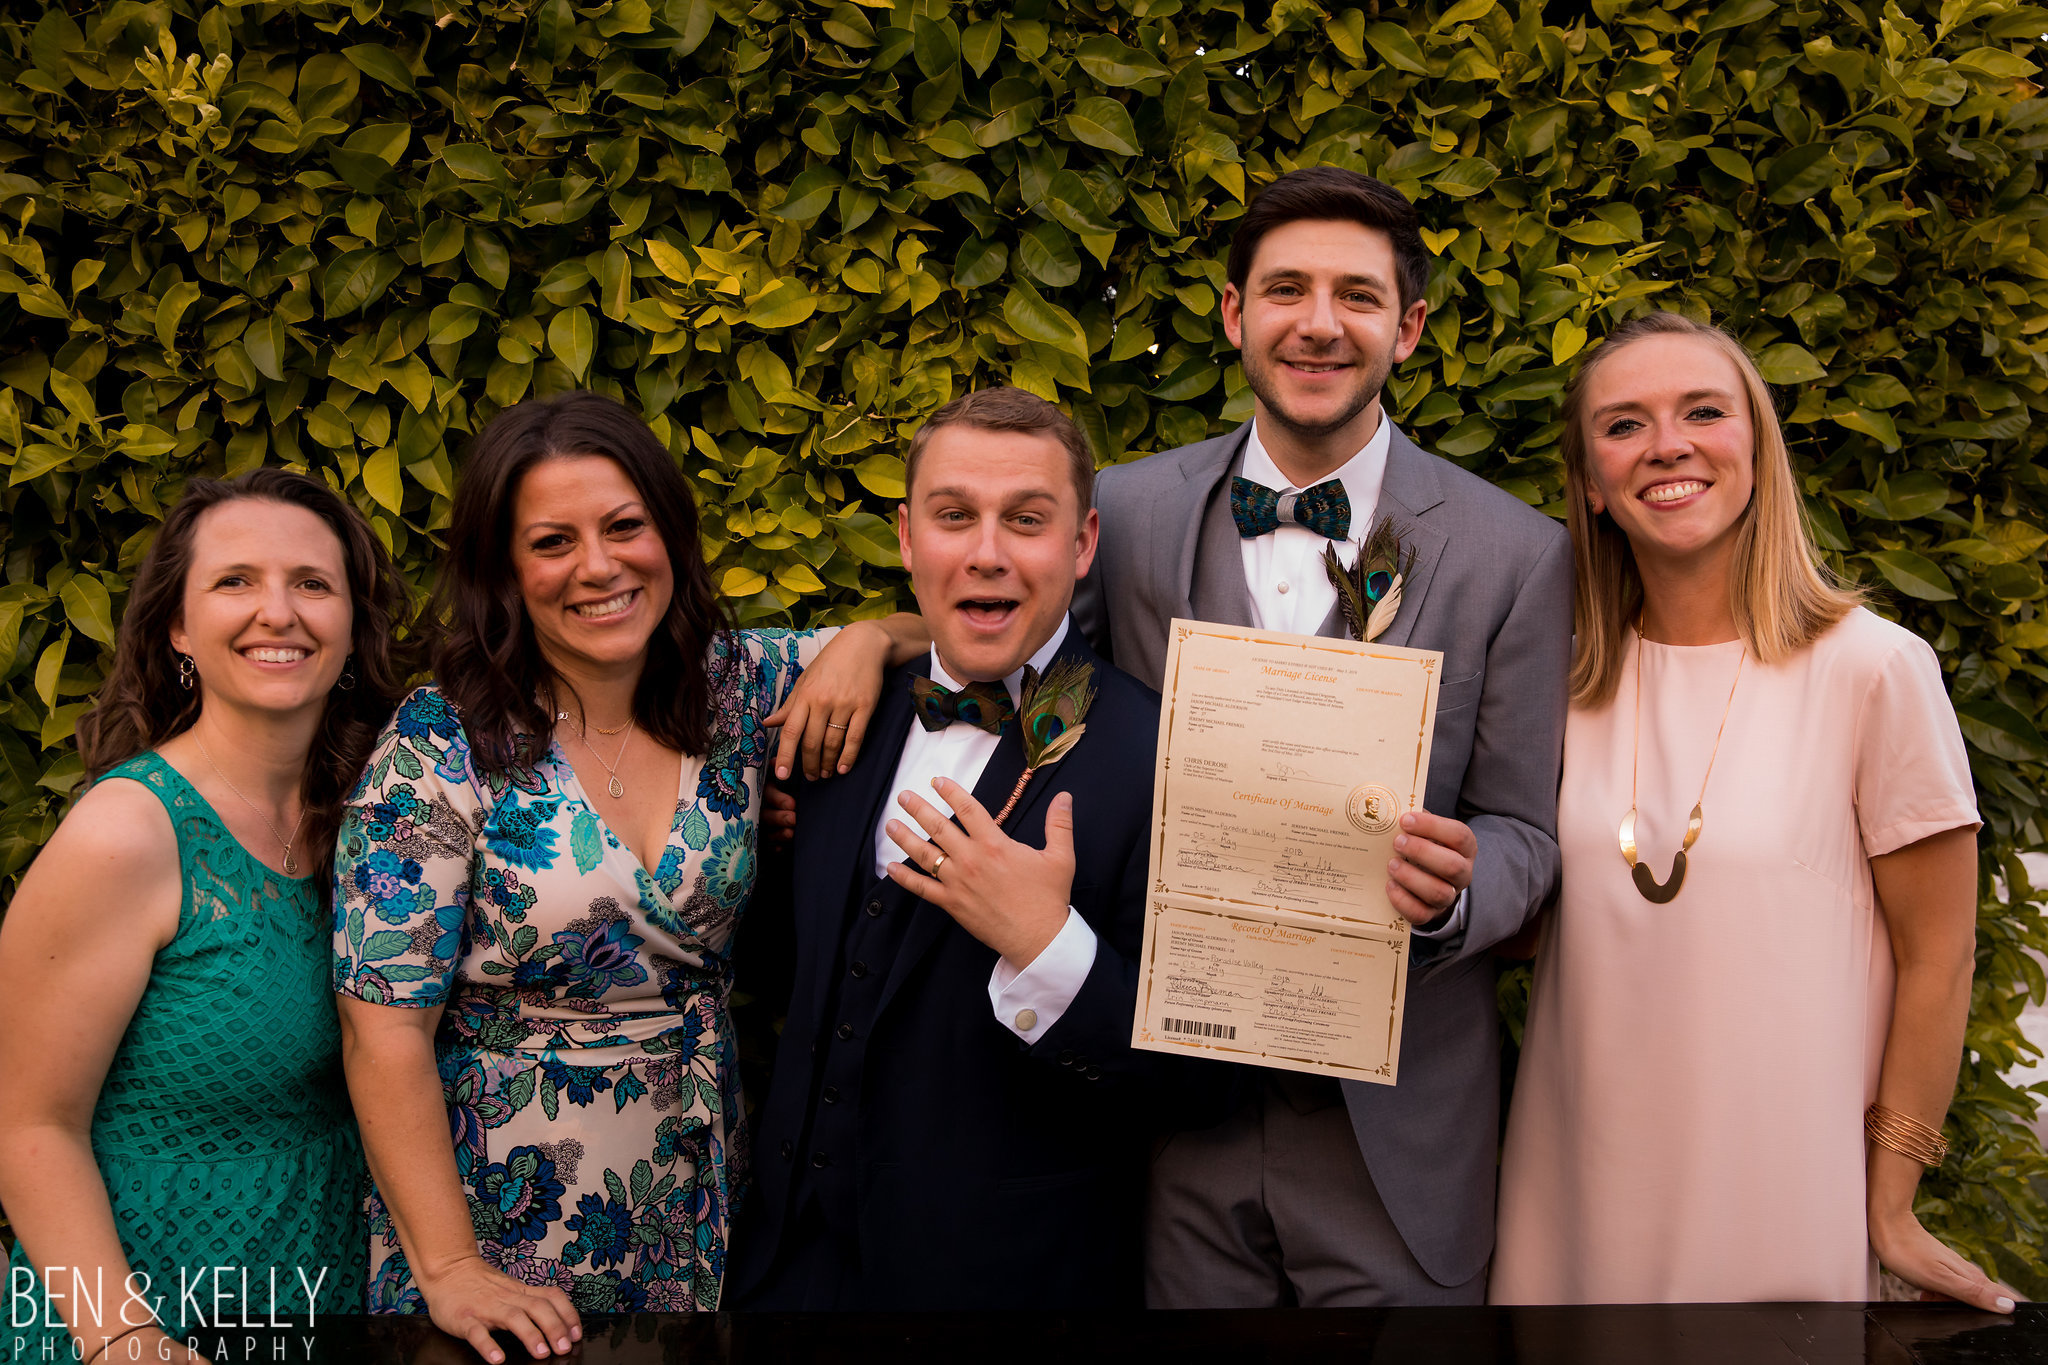 18 marriage license wedding planner signs license friend officiant two grooms make it legal Life Design Events photo by Ben and Kelly Photography.jpg